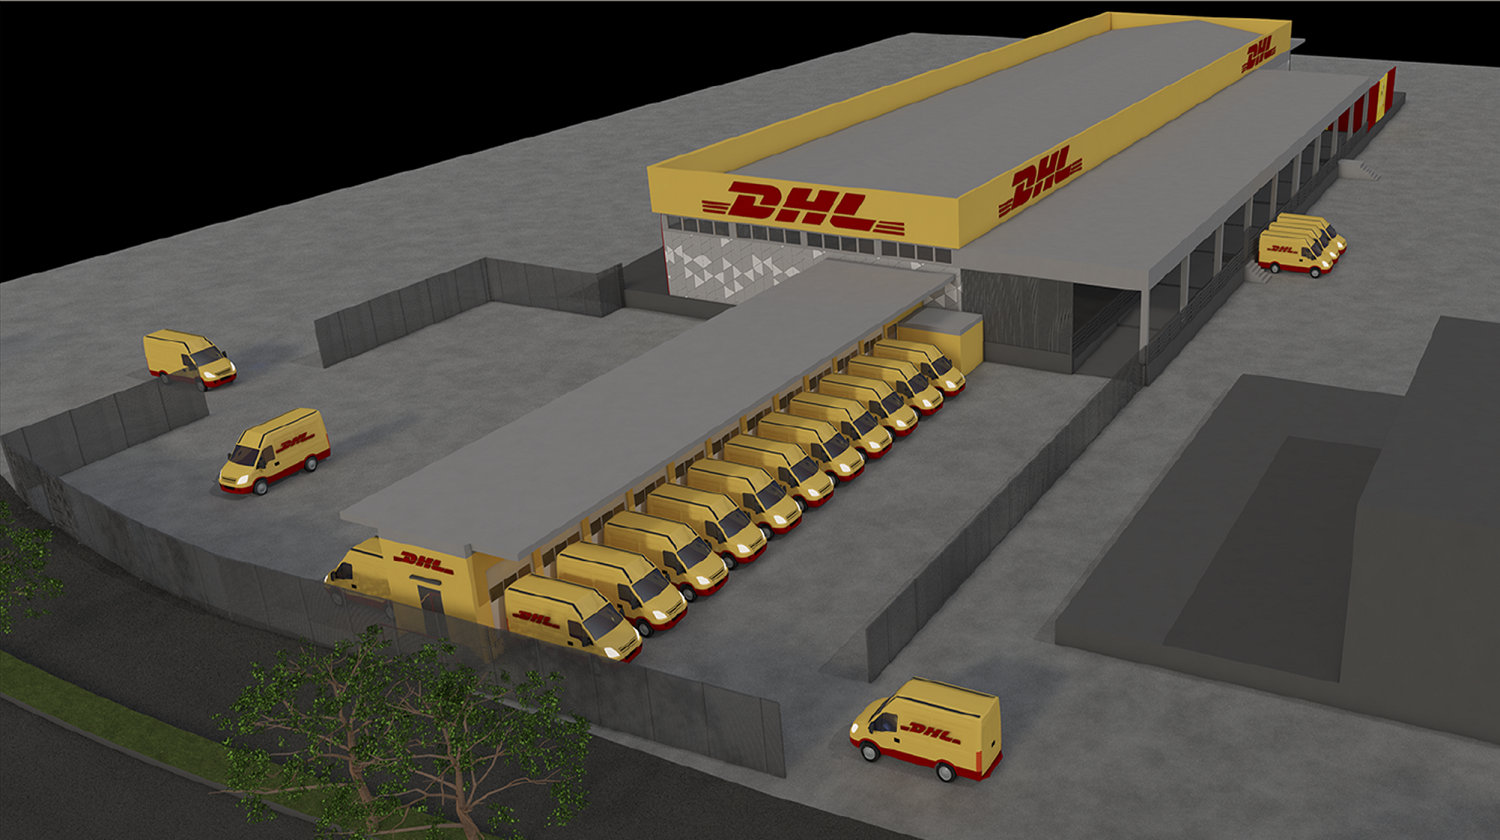 dhl-exterior-picture3.png